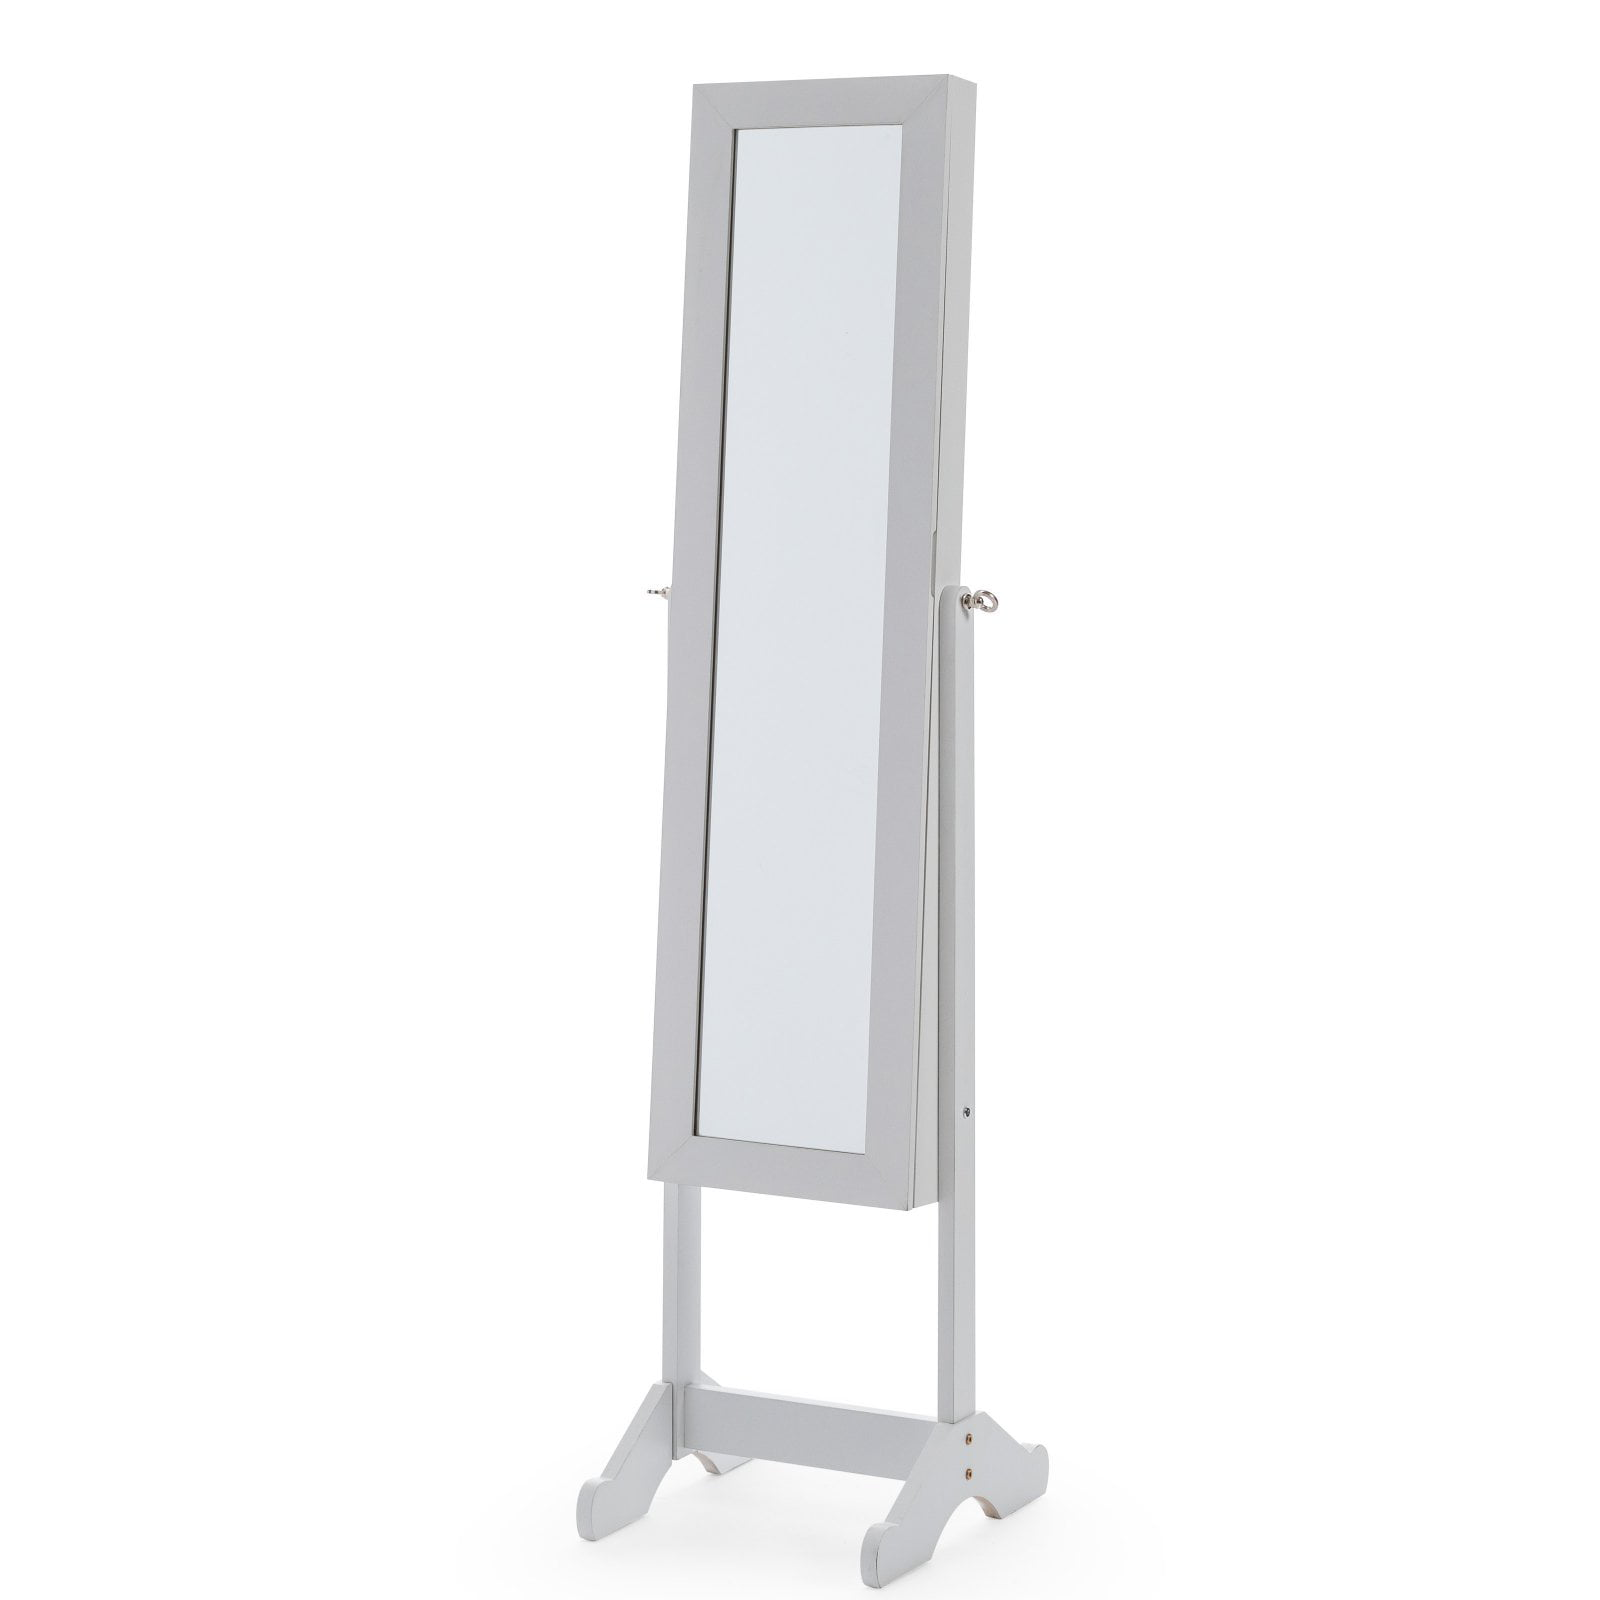 Mainstays Mirrored Cheval Jewelry Armoire - White ...